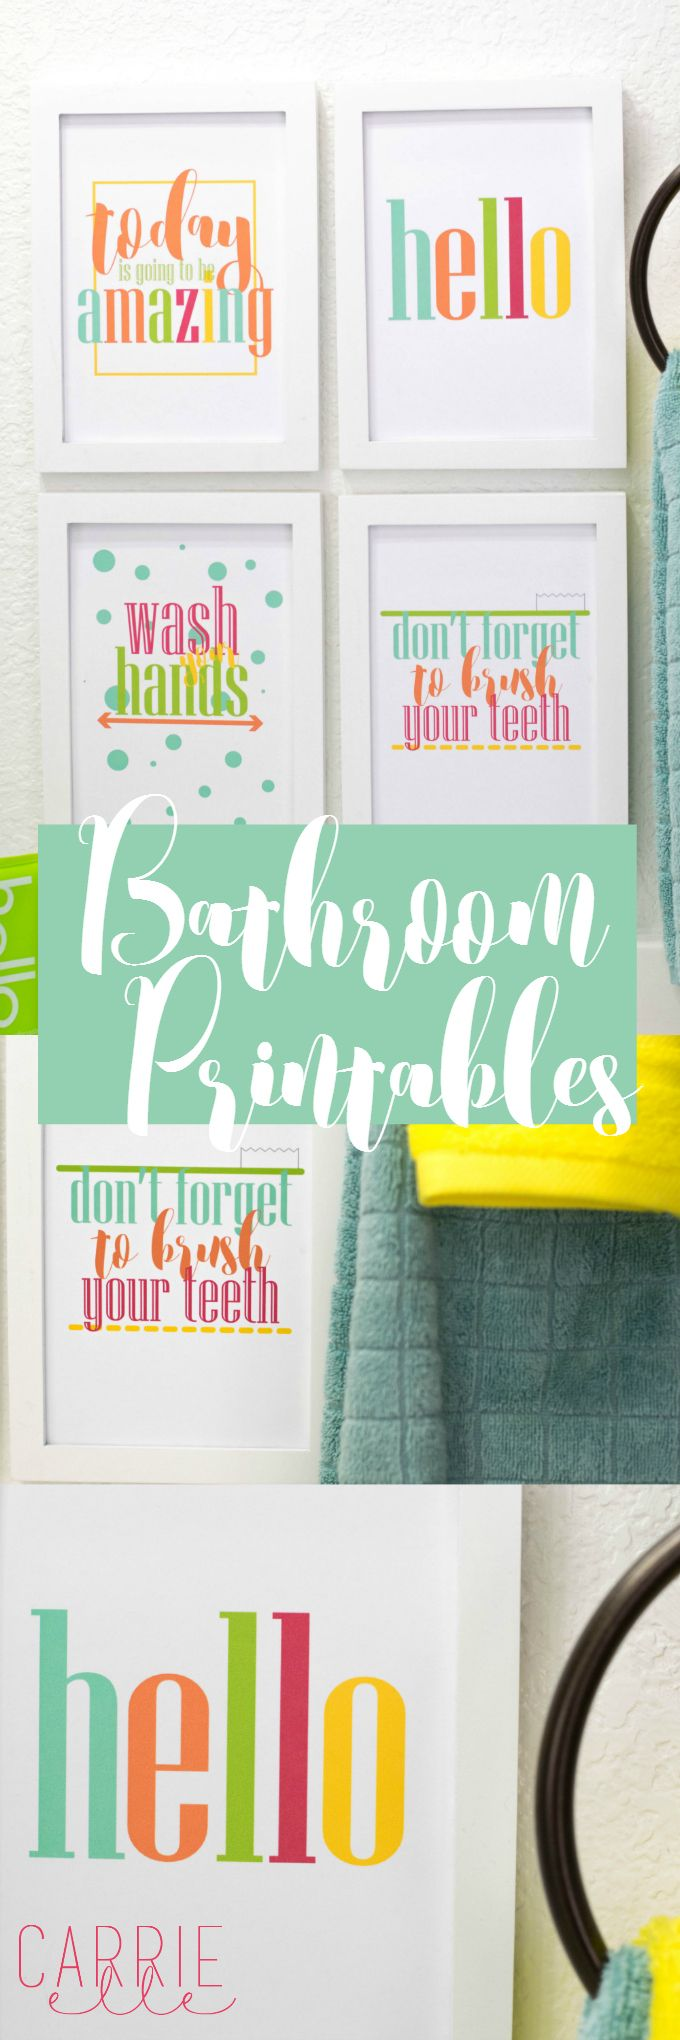 Bathroom wall art printables - Brighten Up Your Bathroom With These Cheerful And Happy Bathroom Printables These Are Great For